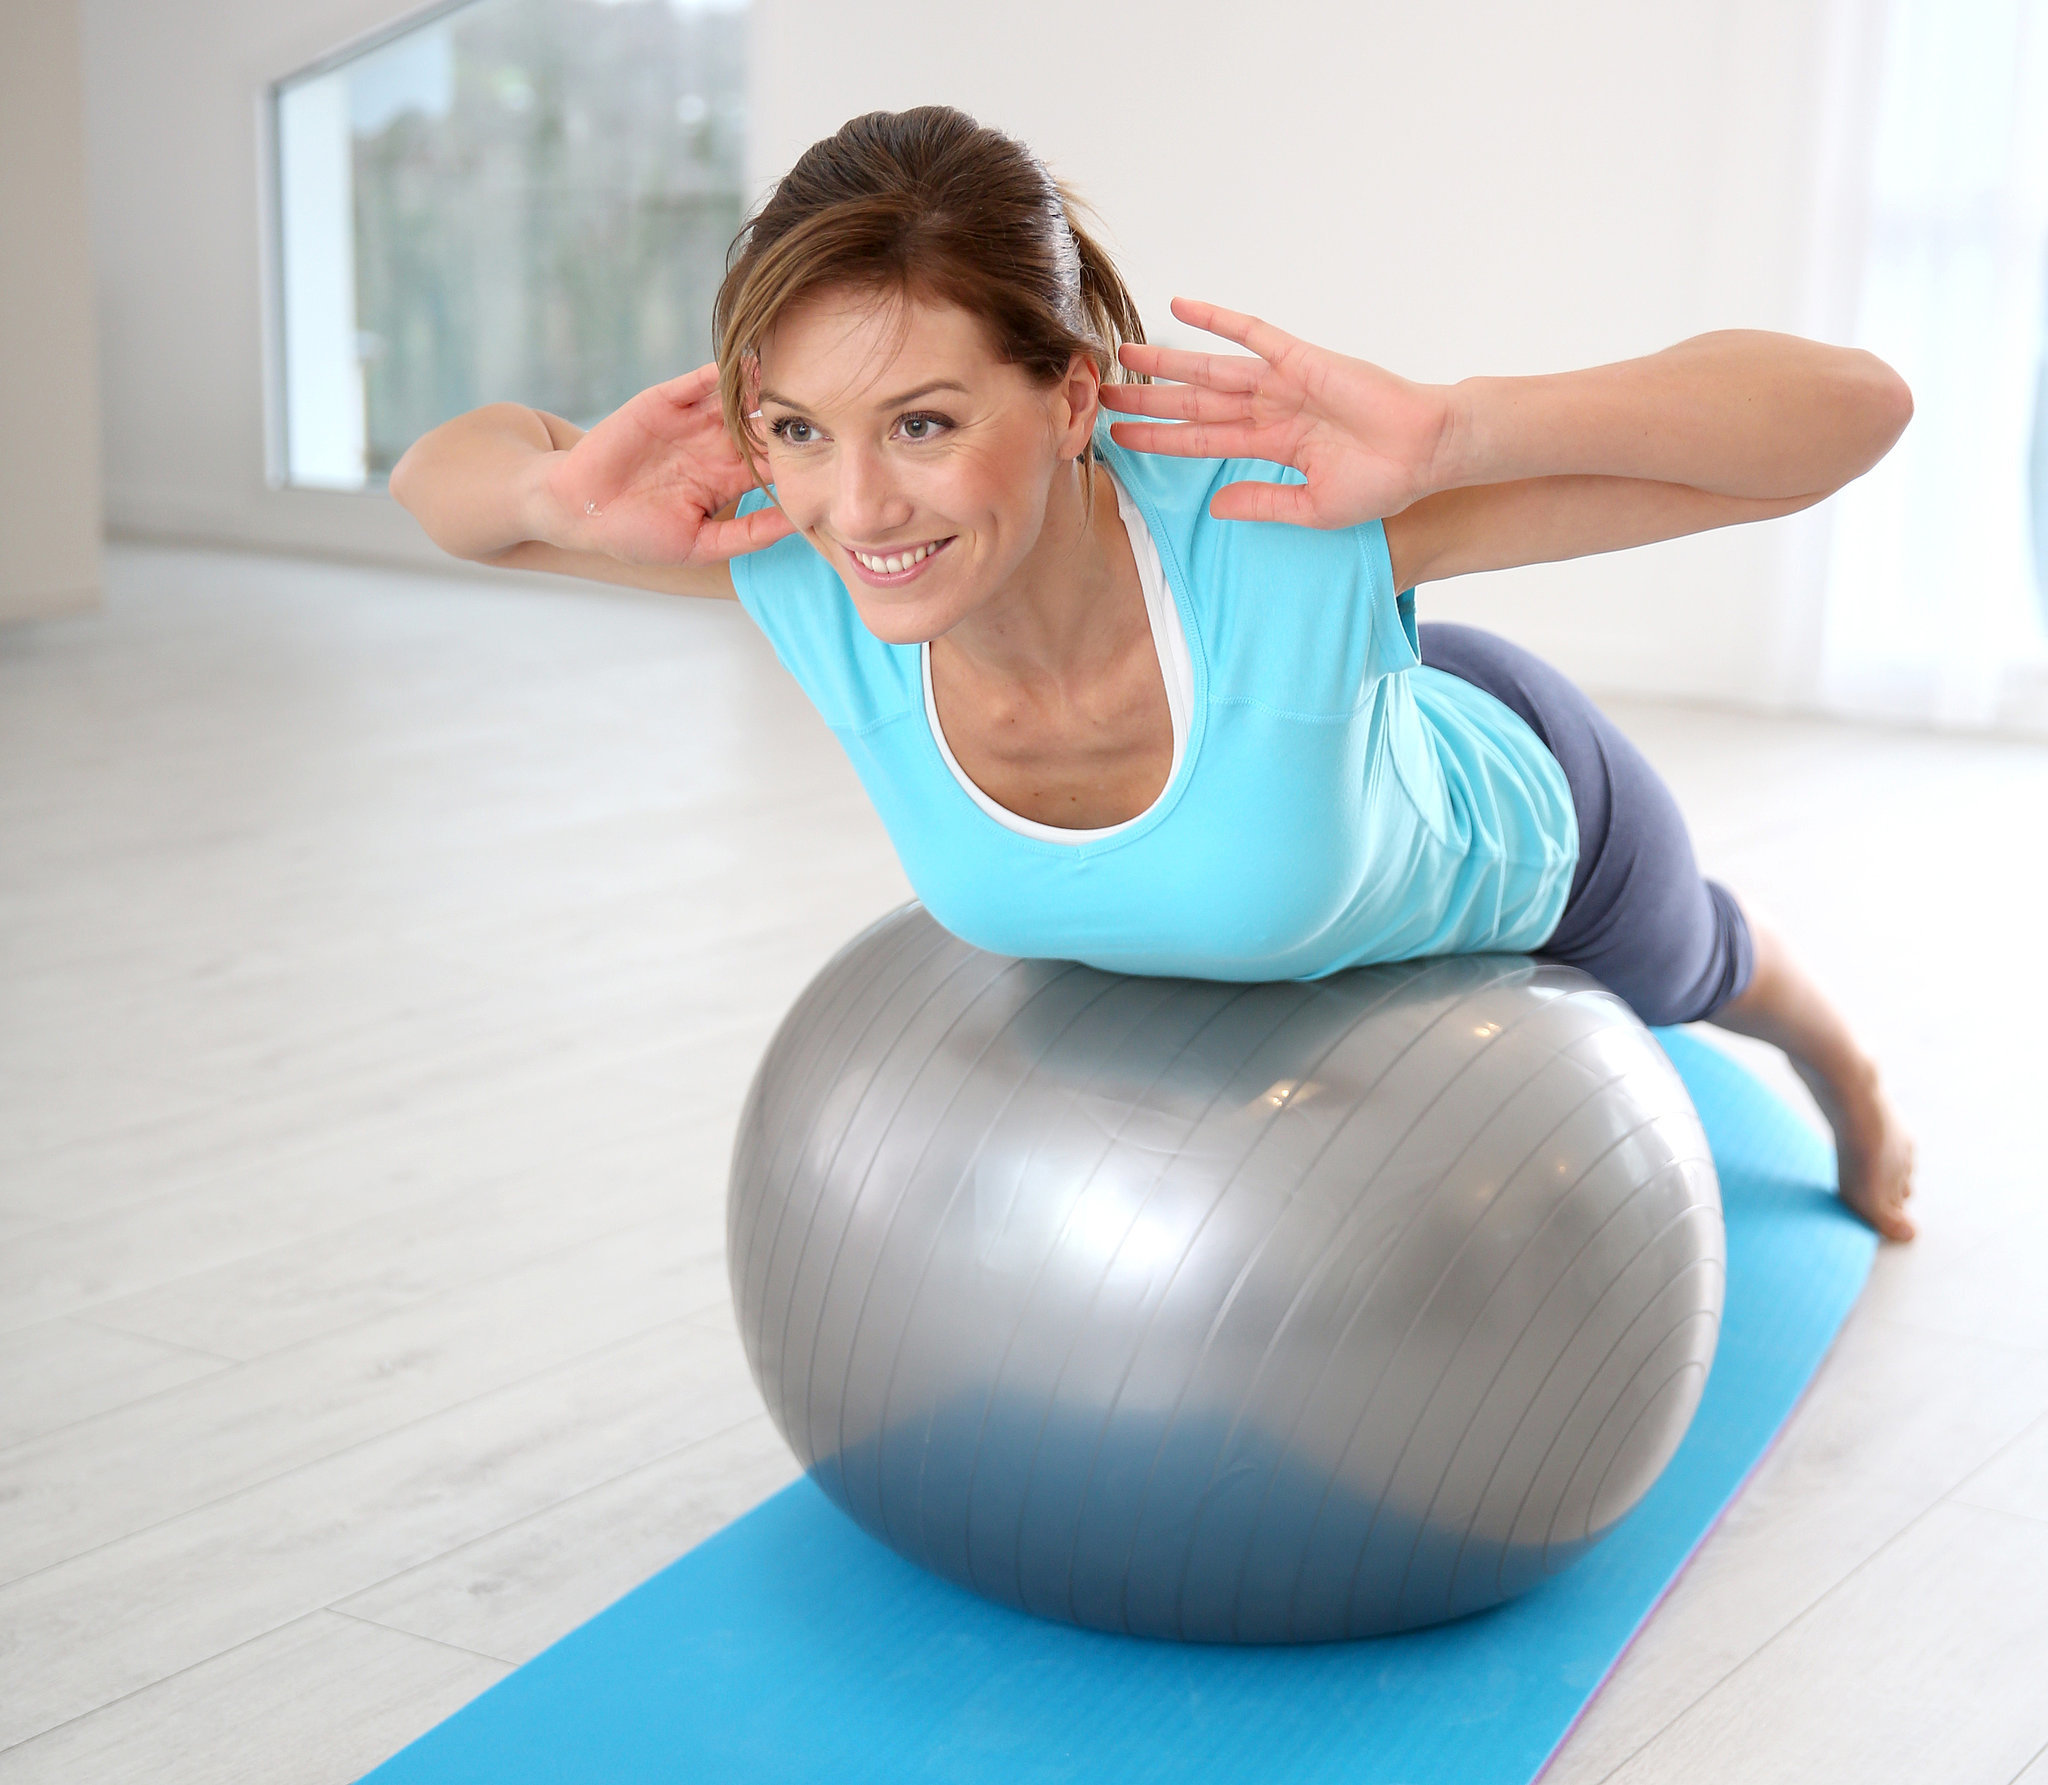 Stability Ball Upper Body Workout: Tame Back Bulge With 4 Exercise-Ball